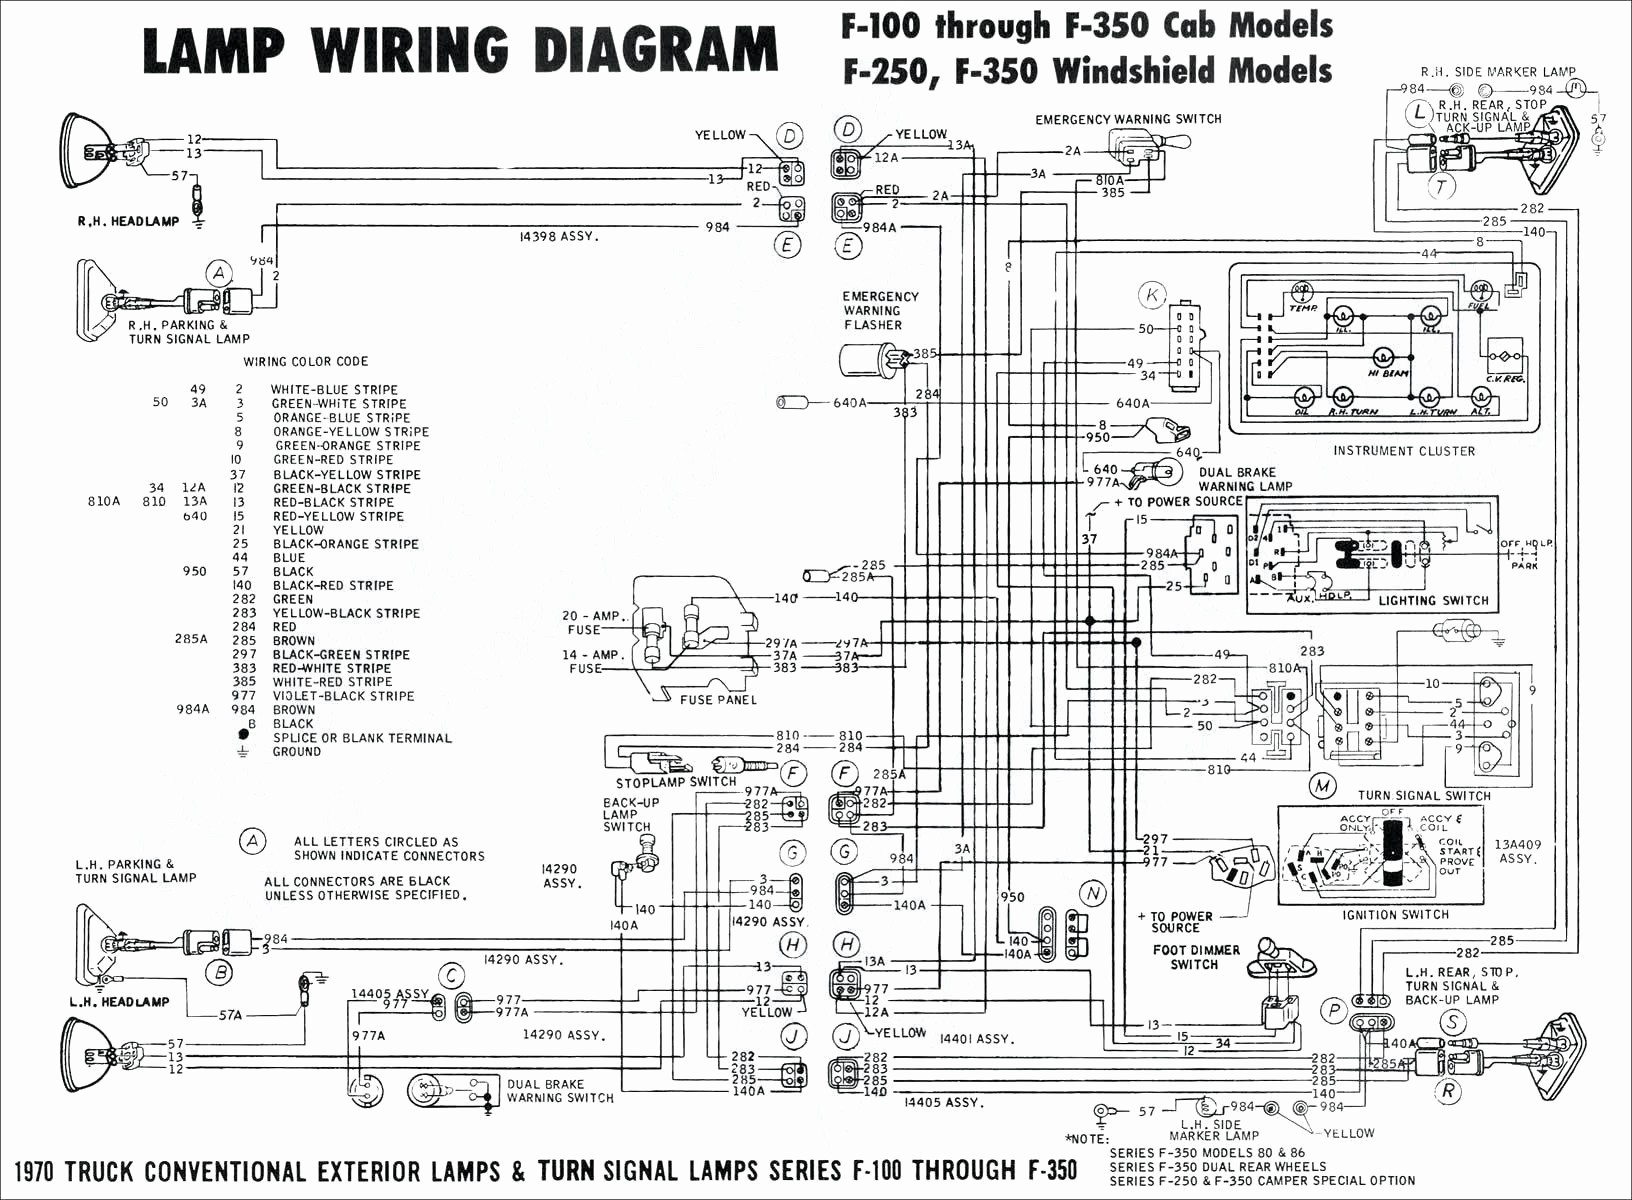 Ditch Witch Parts Diagram Runva Winch Wiring Diagram Hecho Runva Performance Winches Support Of Ditch Witch Parts Diagram